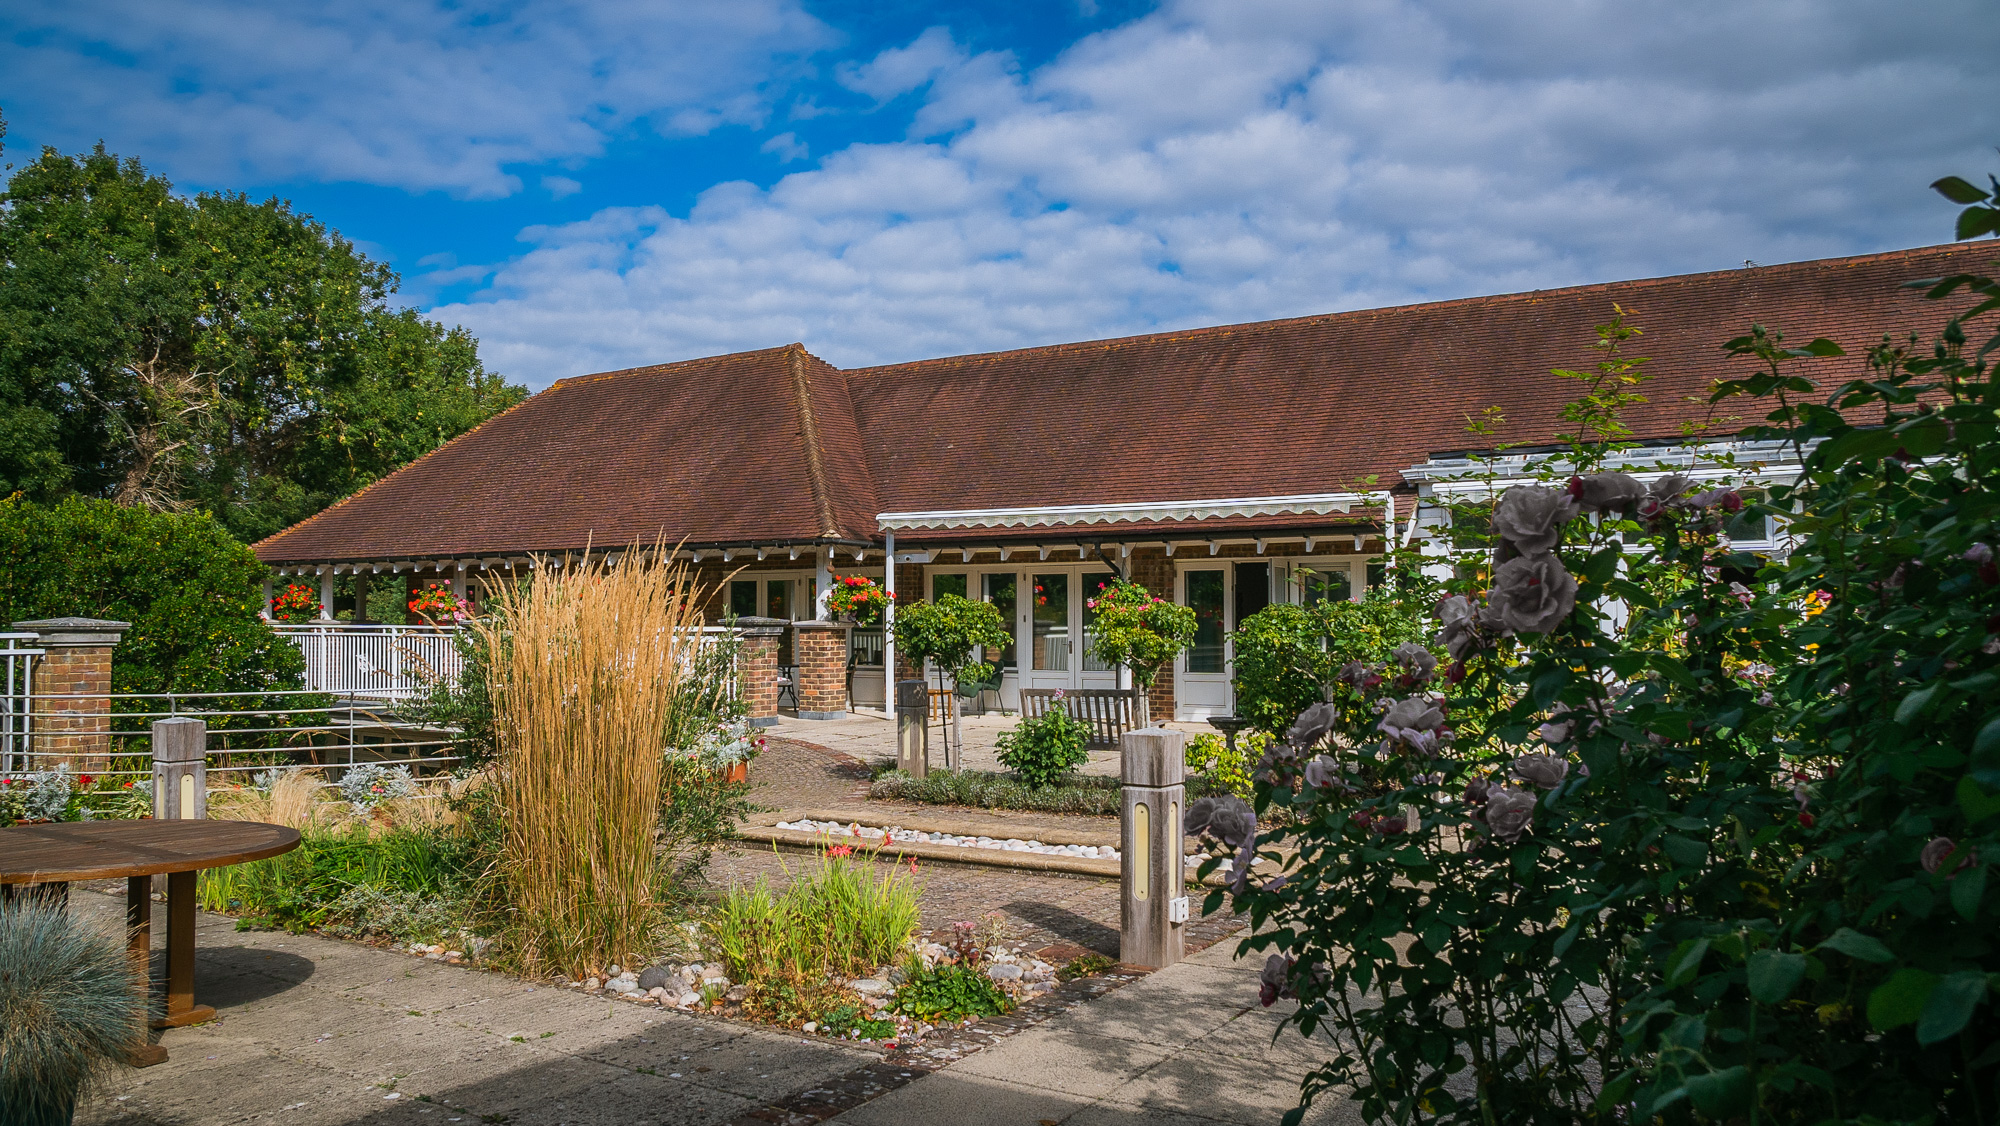 Courtyard bathed in sunshine at Pembury Hospice in the Weald